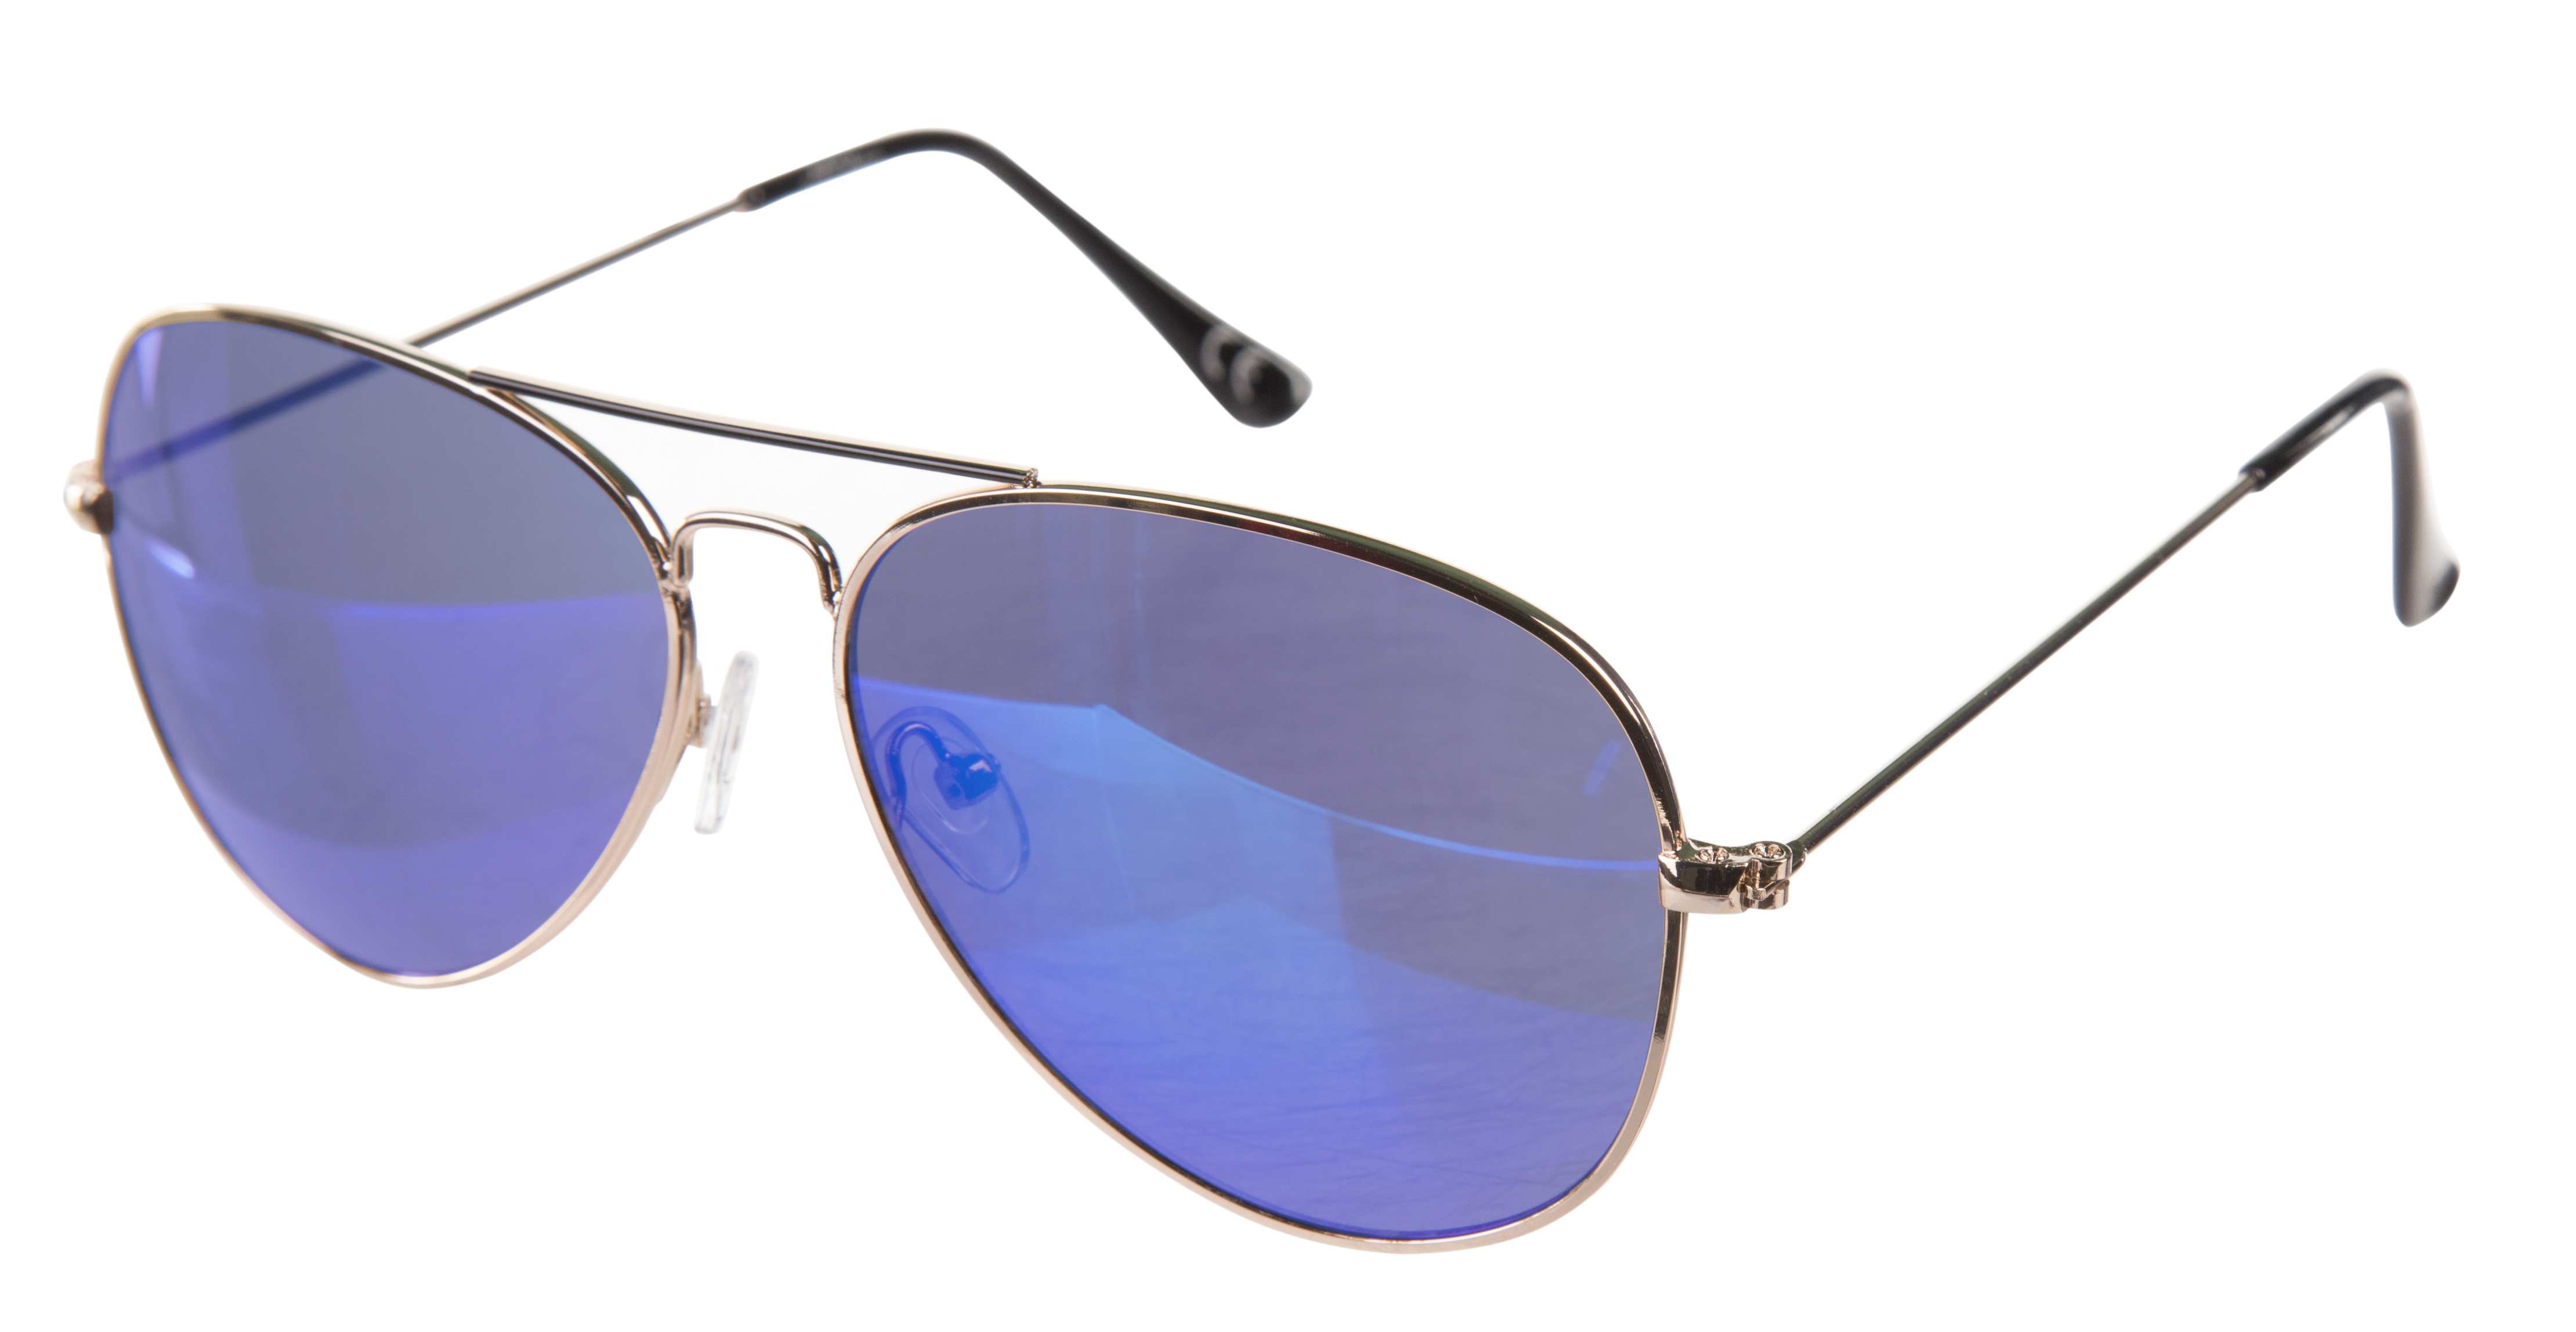 Gold Frame Mirror Lens Aviator Sunglasses from Jeepers Peepers